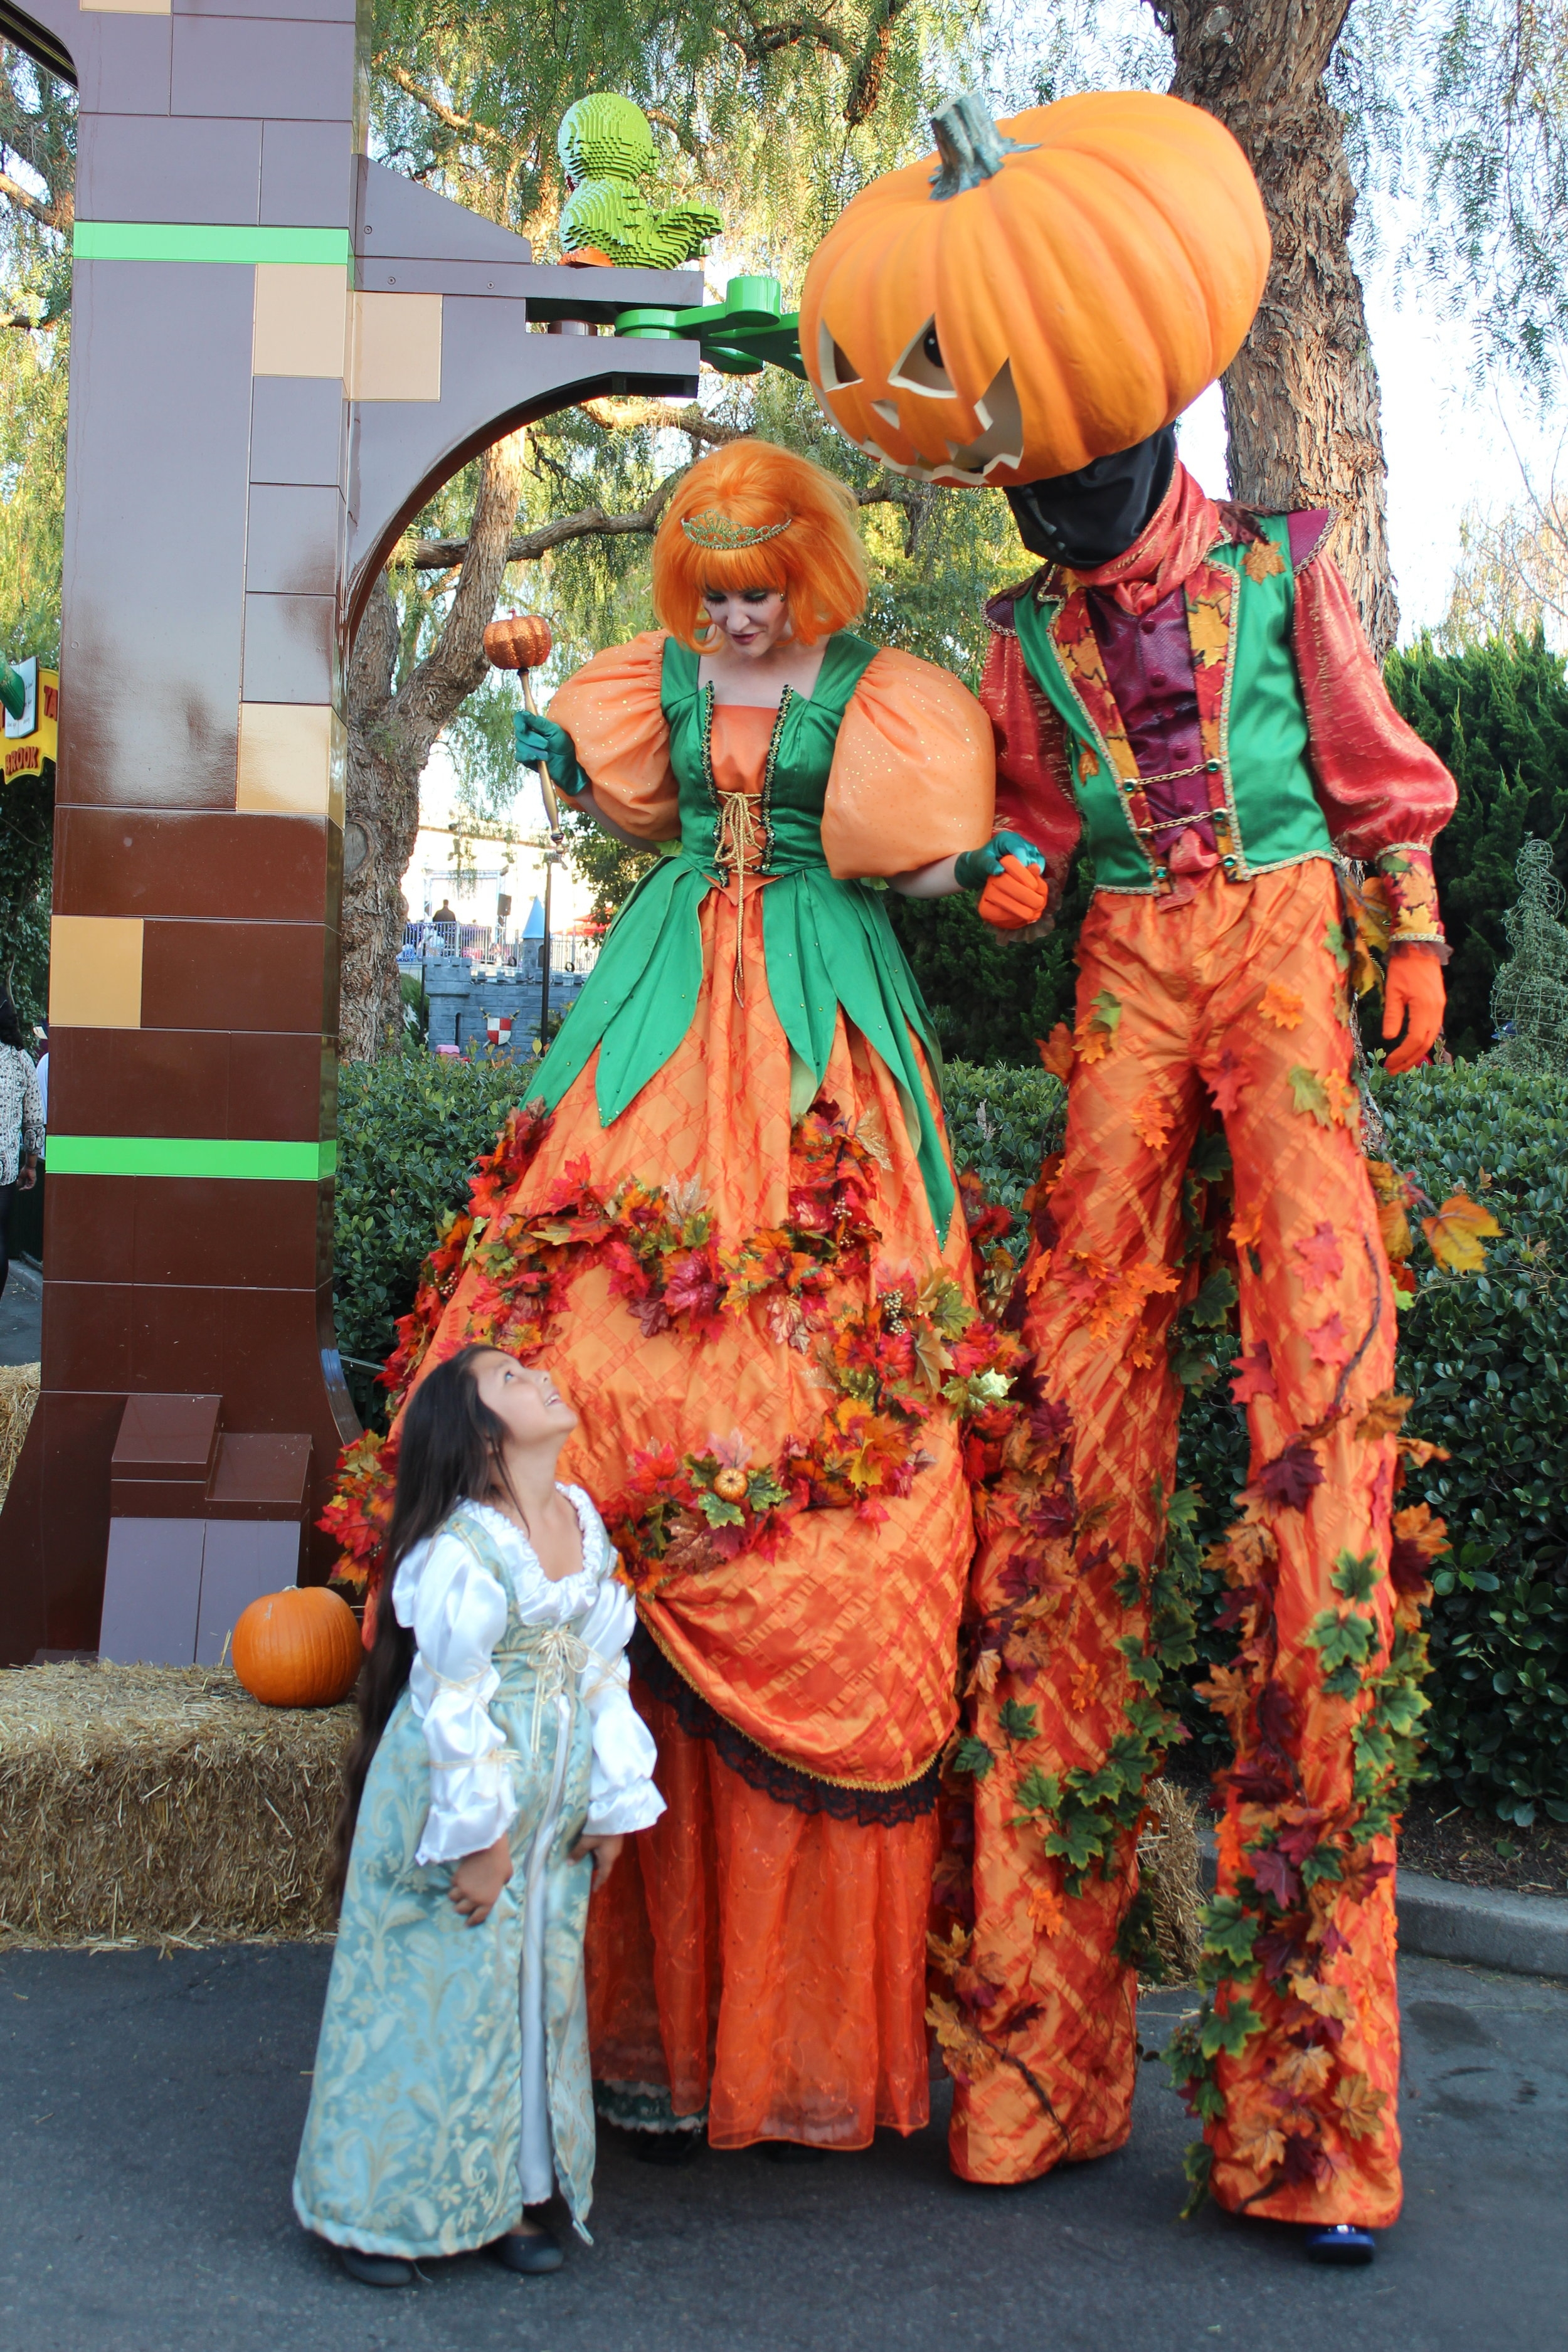 The Pumpkin King and Queen and their royal subject!